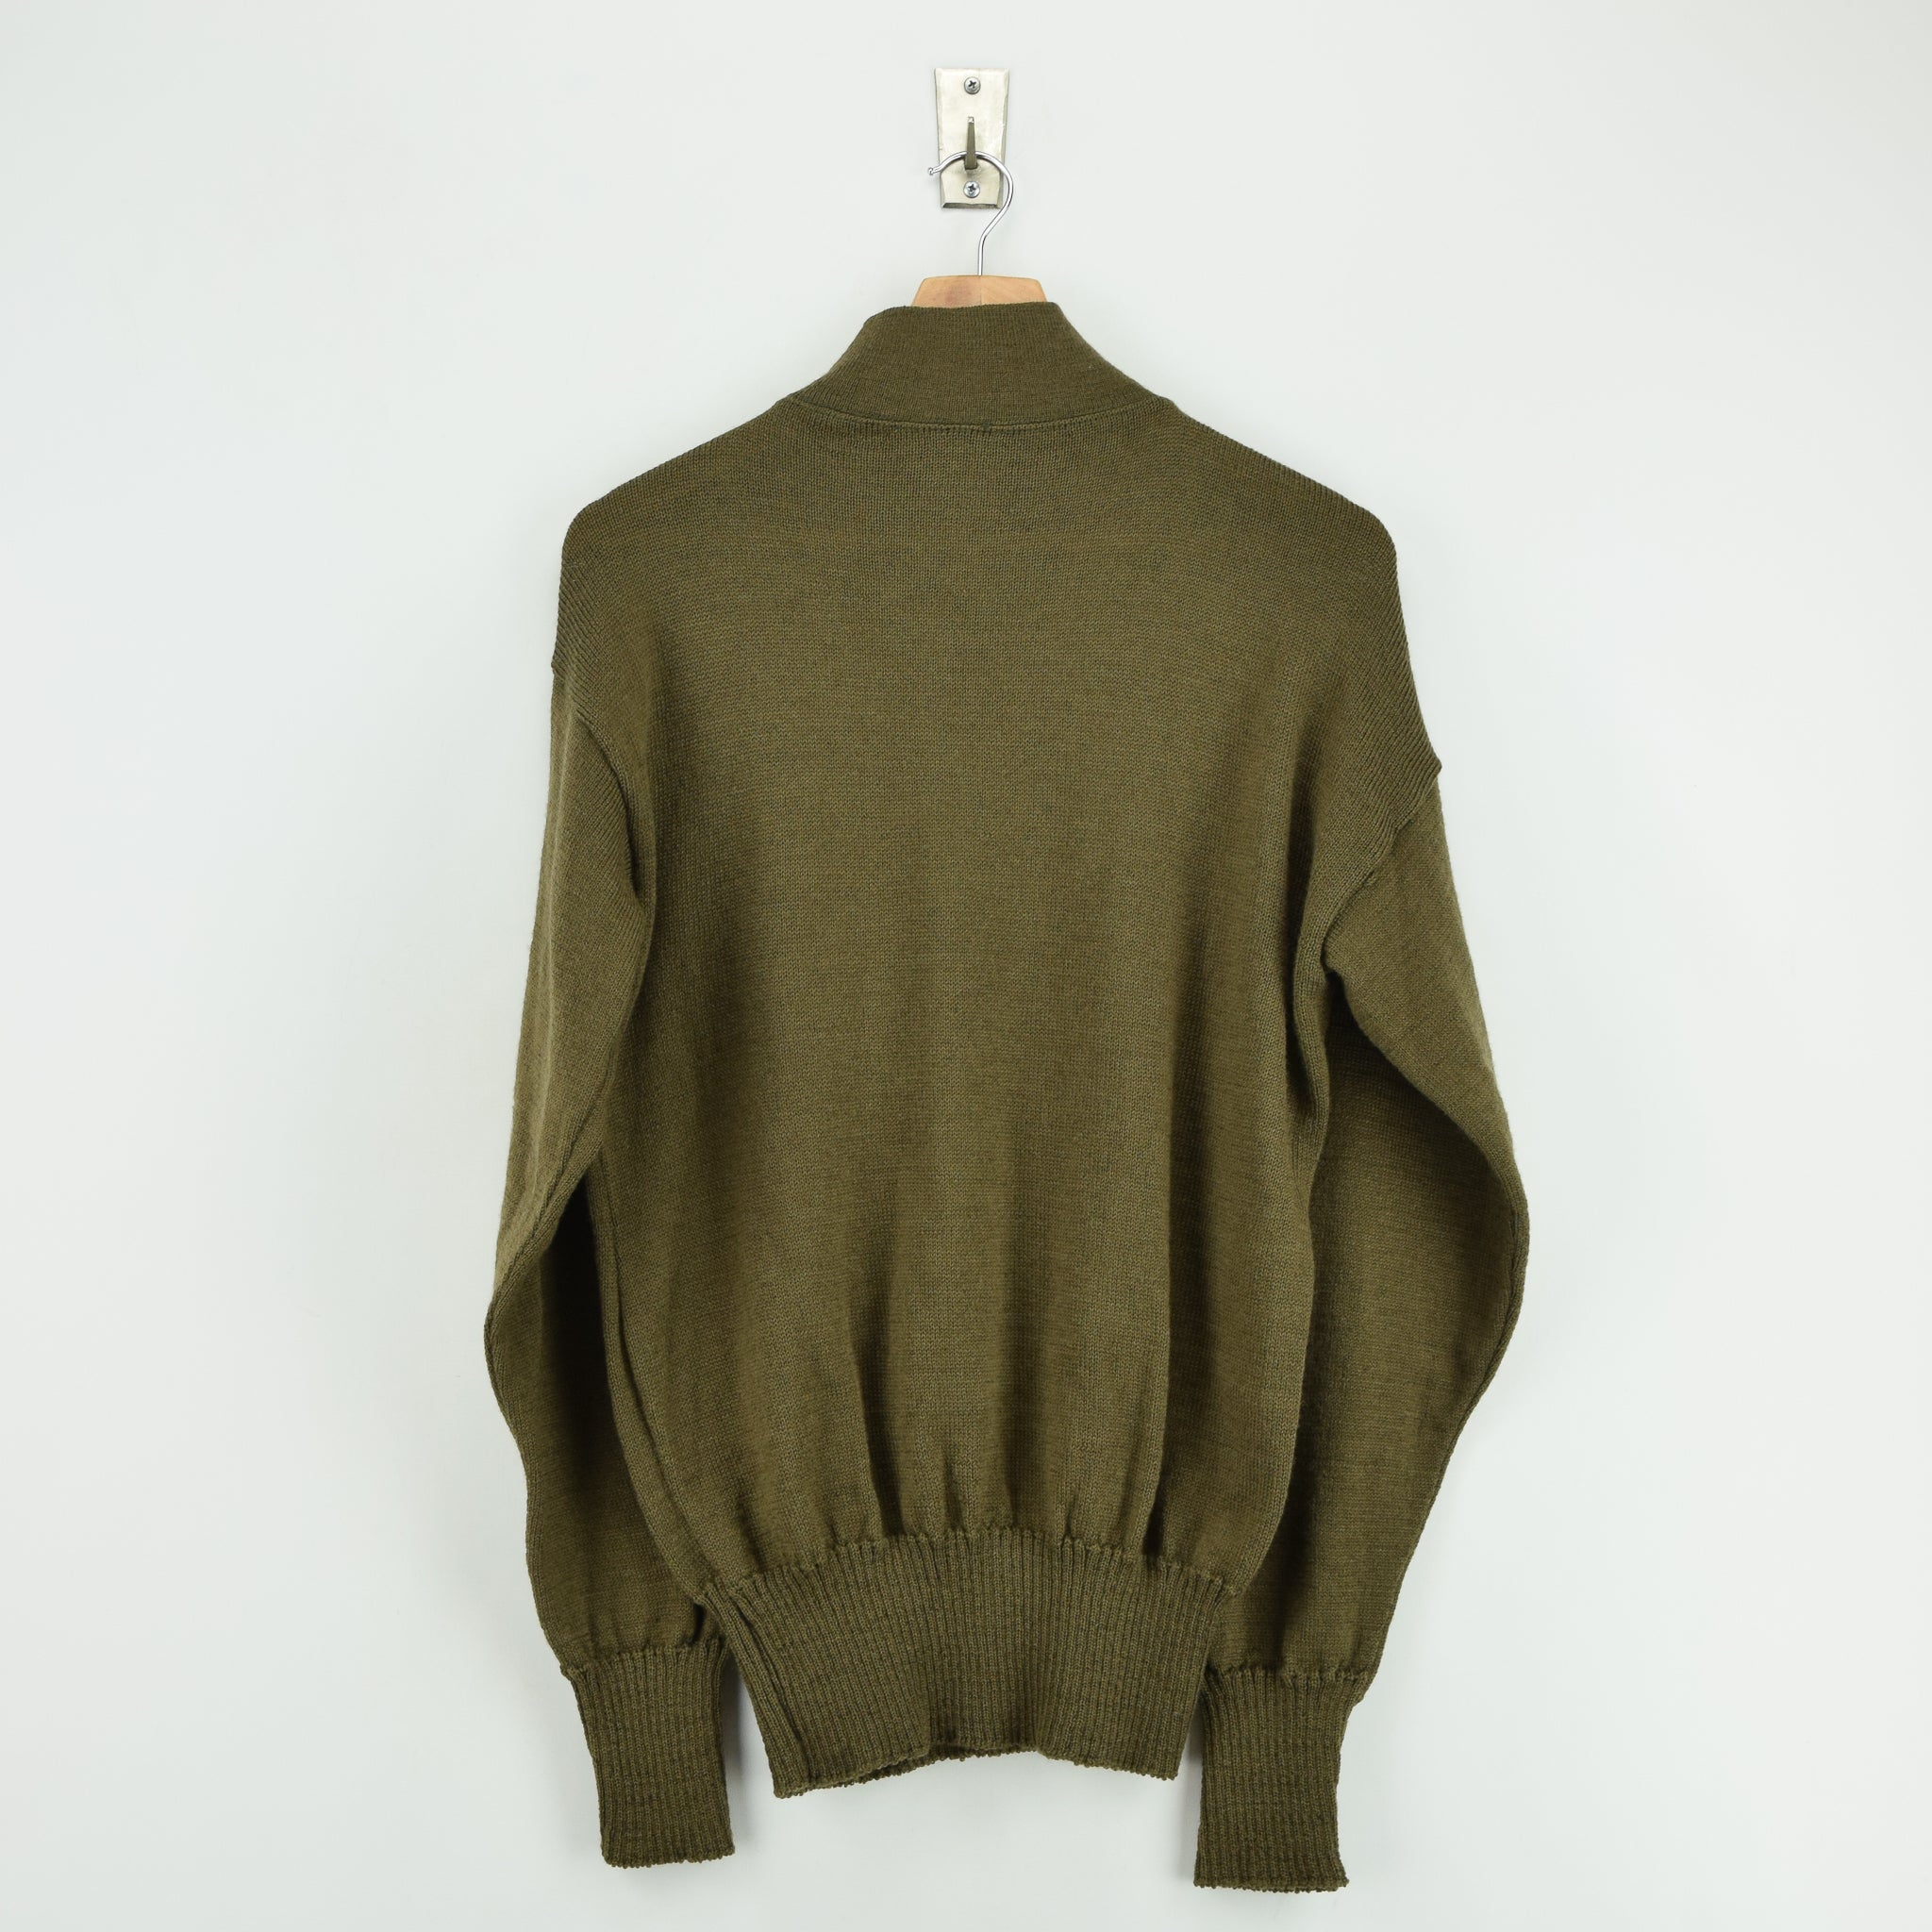 Vintage 60s US Army Military Sweater Olive Wool USA Made Button Pullover M back